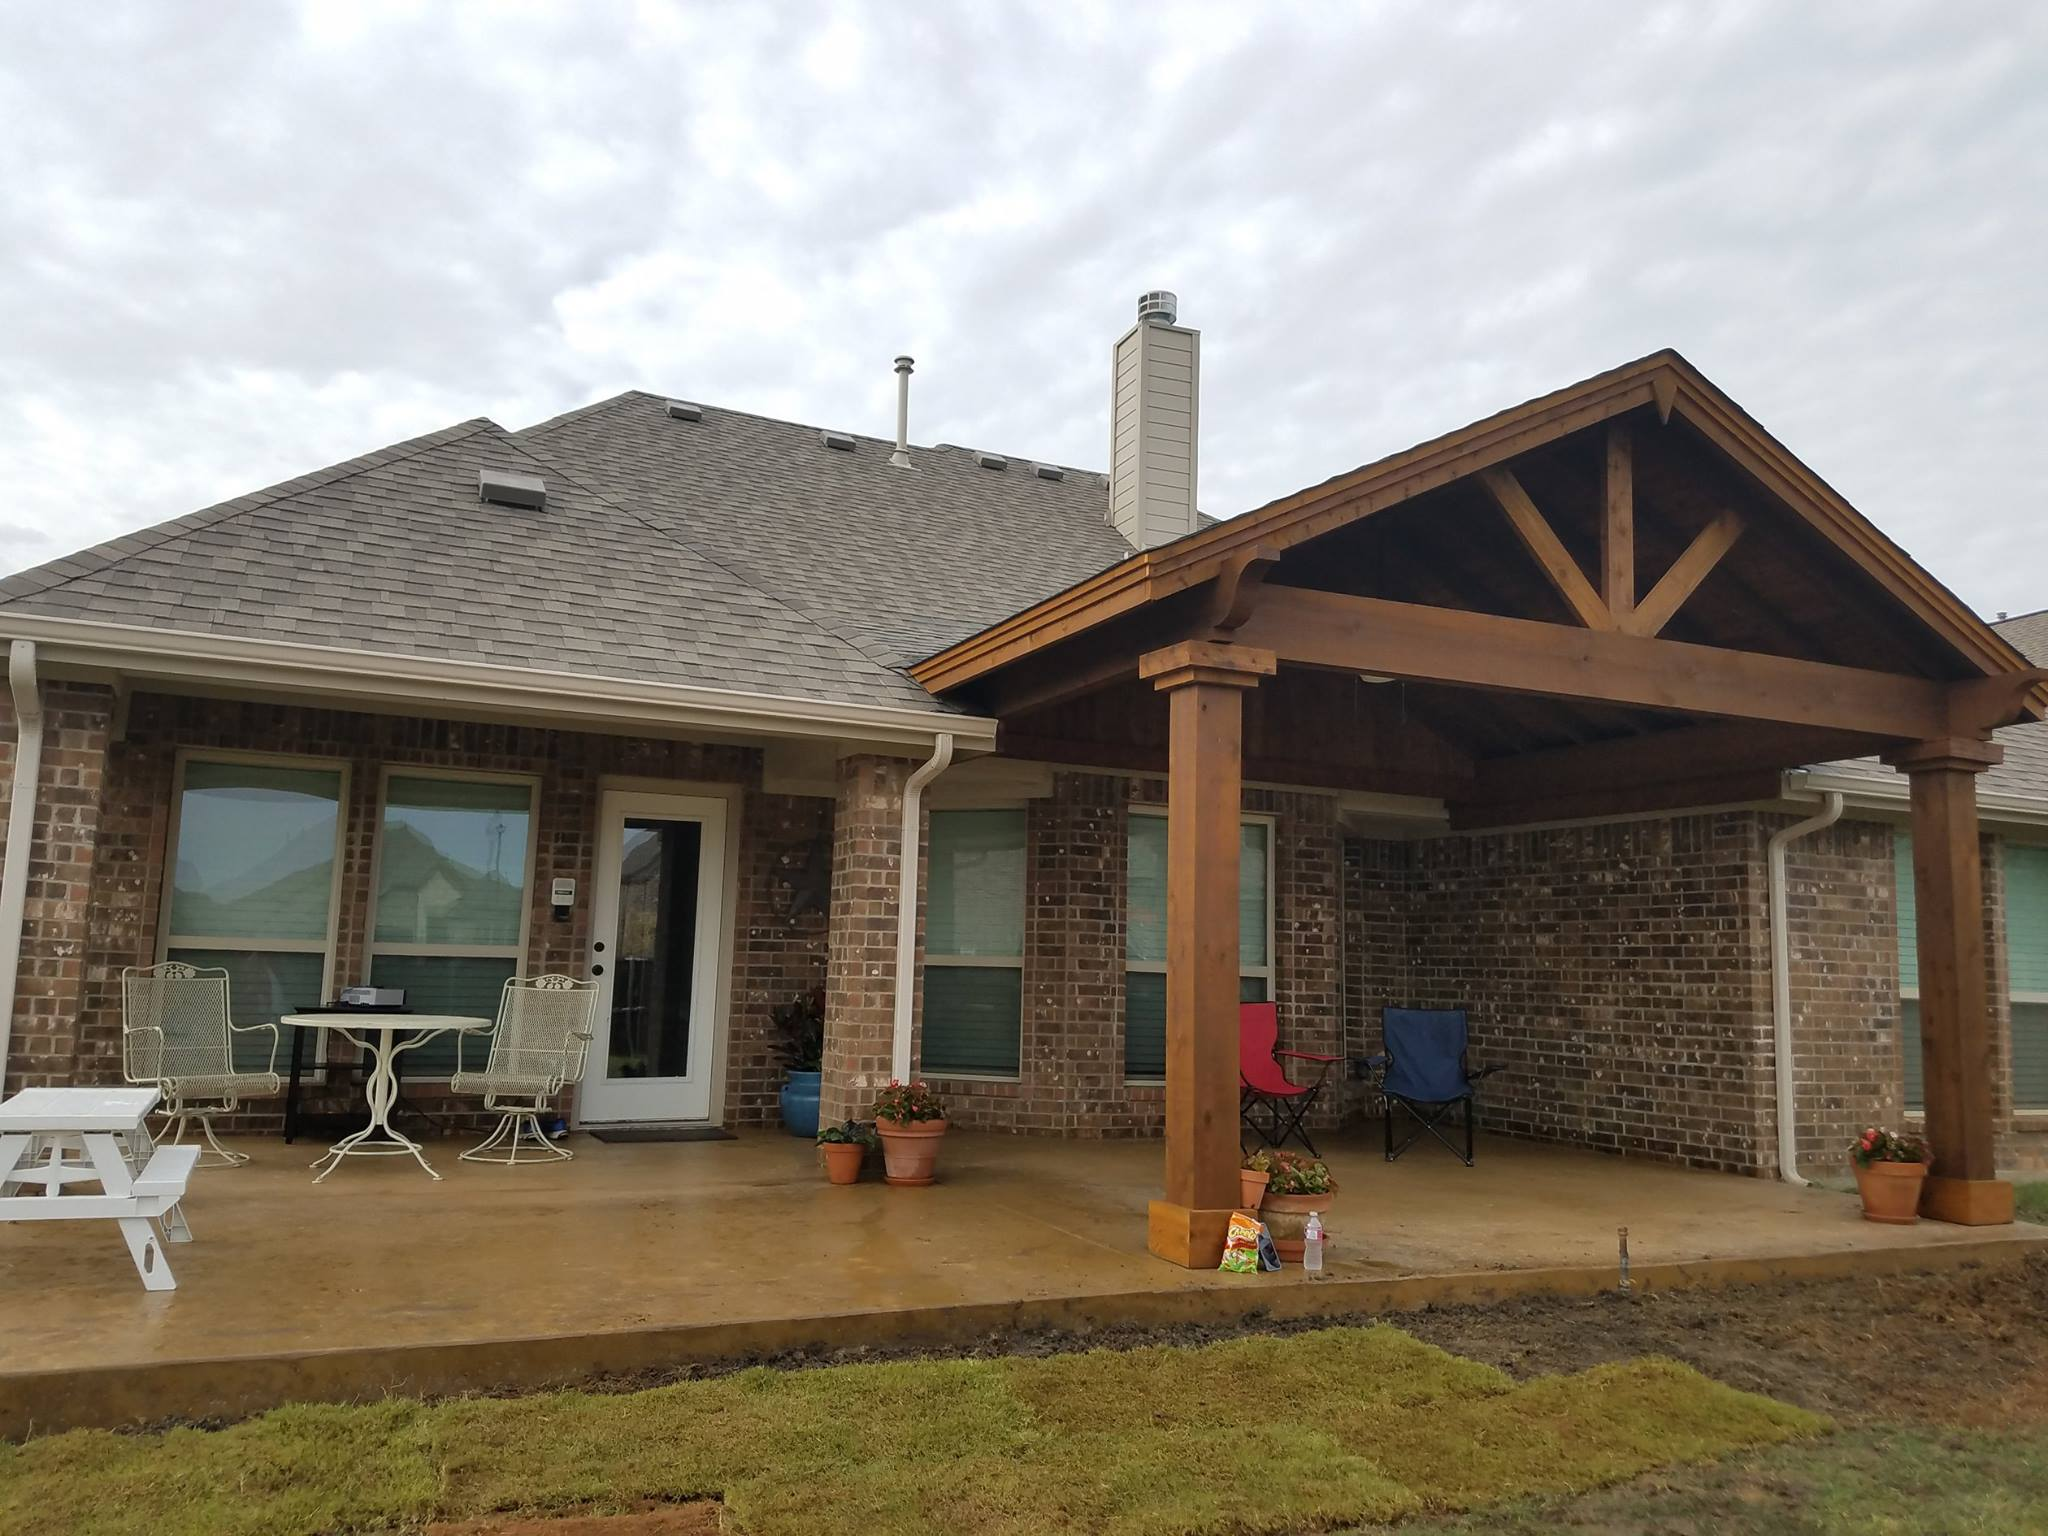 Patio Covers - Texas Outdoor Oasis - Patio Cover Installation on House Backyard Deck id=53003